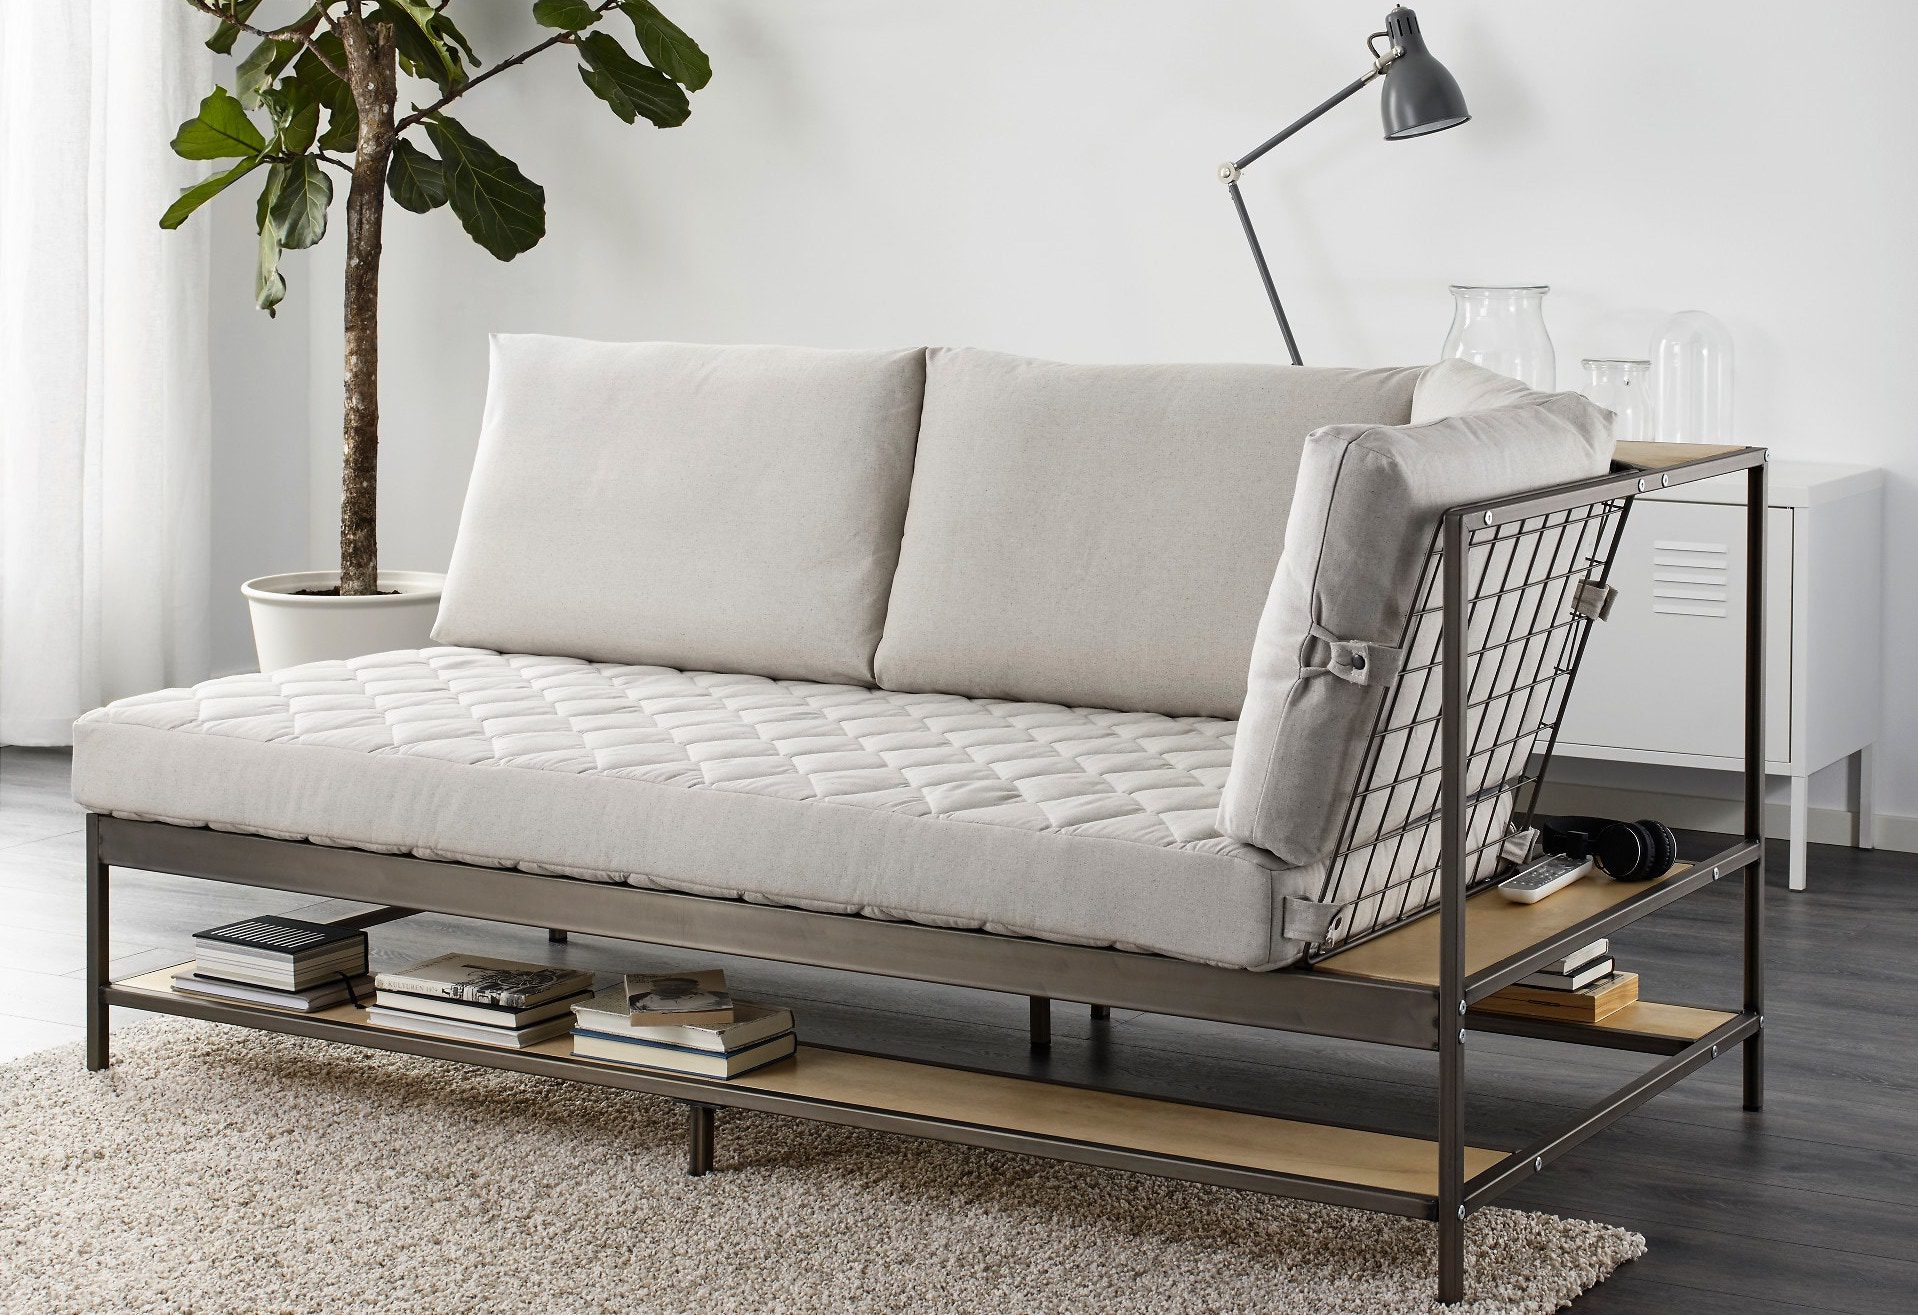 IKEA Ekebol Sofa Review